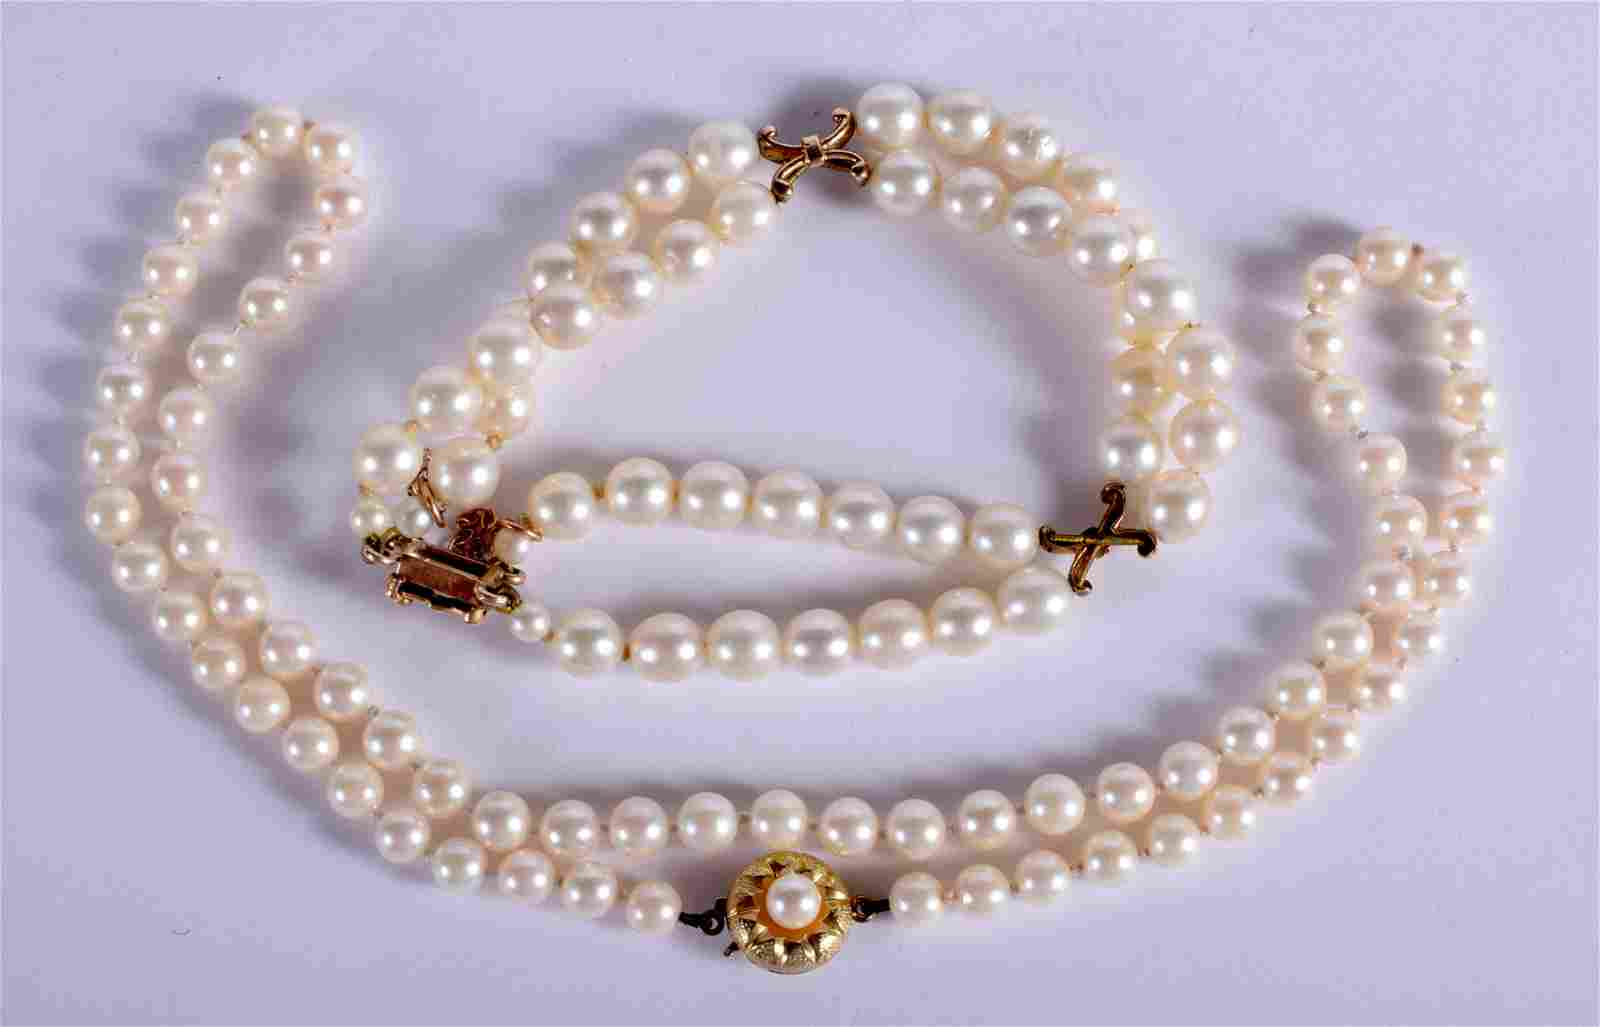 AN EDWARDIAN GOLD MOUNTED PEARL NECKLACE with matching